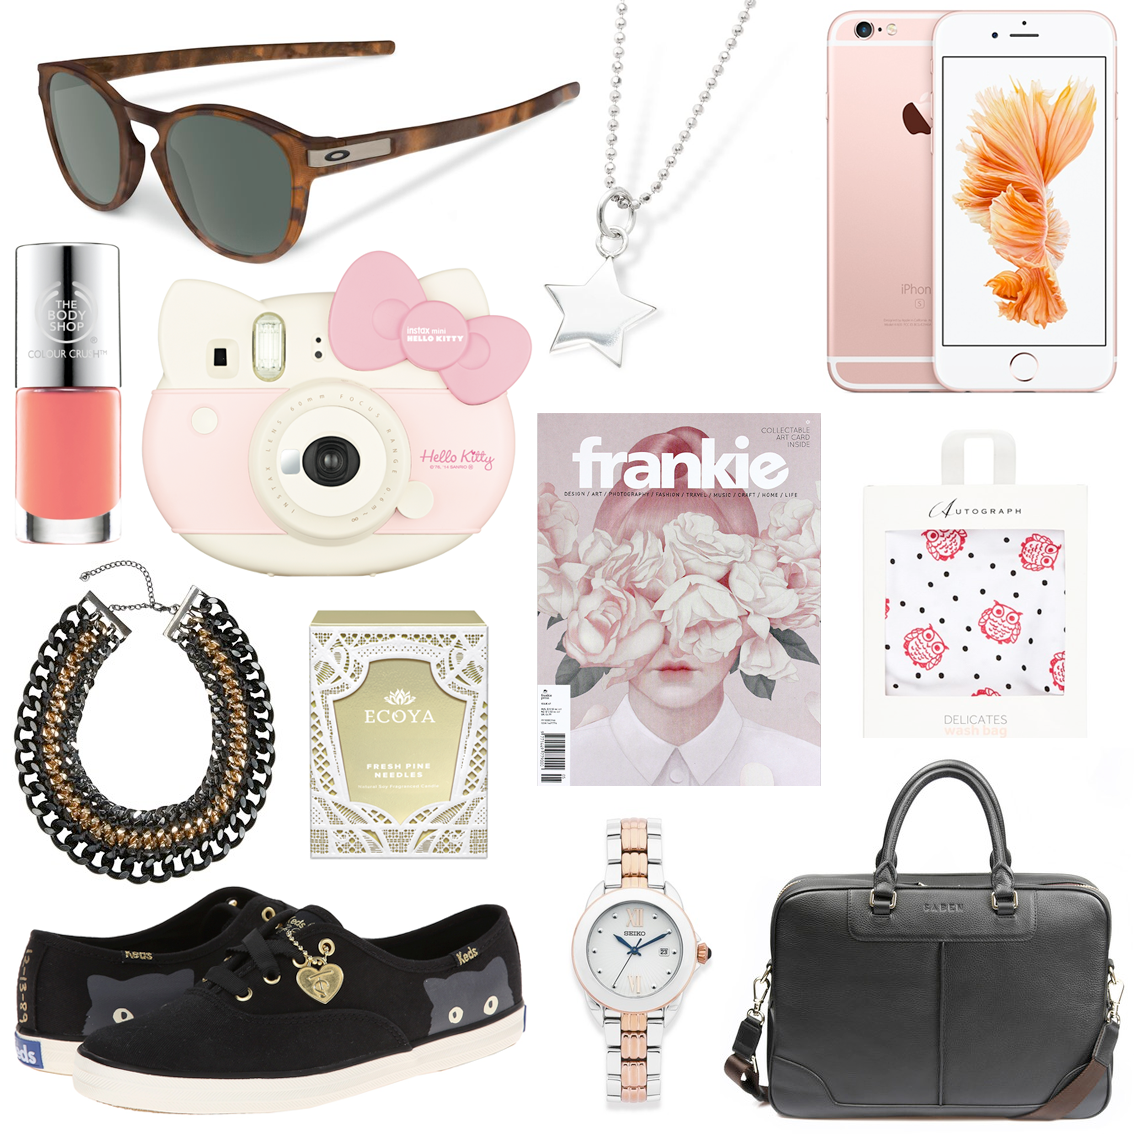 Gift ideas for fashionable babes // Oakley Latch Sunglasses $179.99 | Gala Darling Mystical Manifest Pendant Charm, $79.00 | Apple iPhone 6S, from $1199.00 | The Body Shop Colour Crush™ Nail Polish, $12.95 | Fujifilm Hello Kitty Instax Mini, $179.99 | City Chic Chain Rope Plait Necklace, $44.99 | ECOYA Fresh Pine Needles Madison Jar, $49.95 | Frankie Magazine | Autograph Owl Wash Bag, AUD $9.99 | Keds x Taylor Swift Sneaky Cat Shoes, $79.95 | Seiko Watch, $599.00 | Saben Briefcase, $489.00